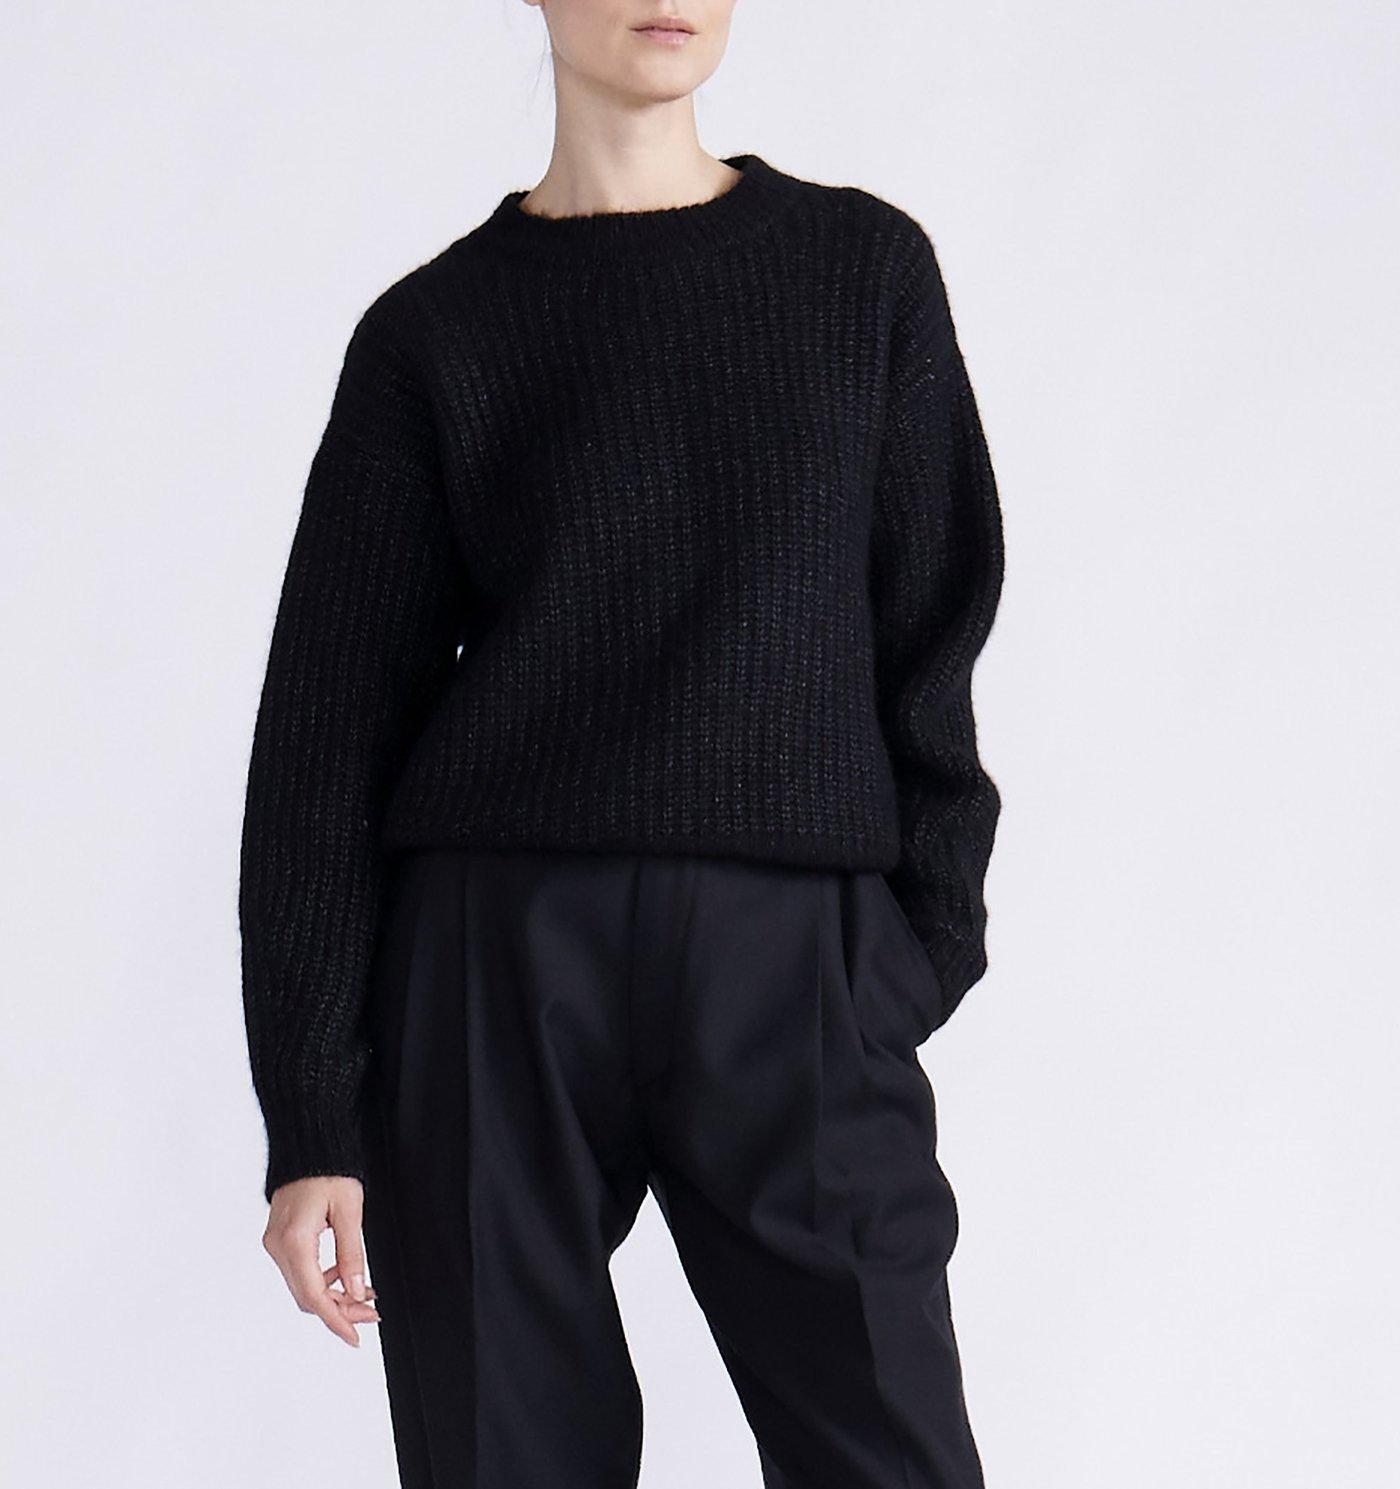 RYAN ROCHE CASHMERE SILK RIBBED OVERSIZED CREWNECK SWEATER